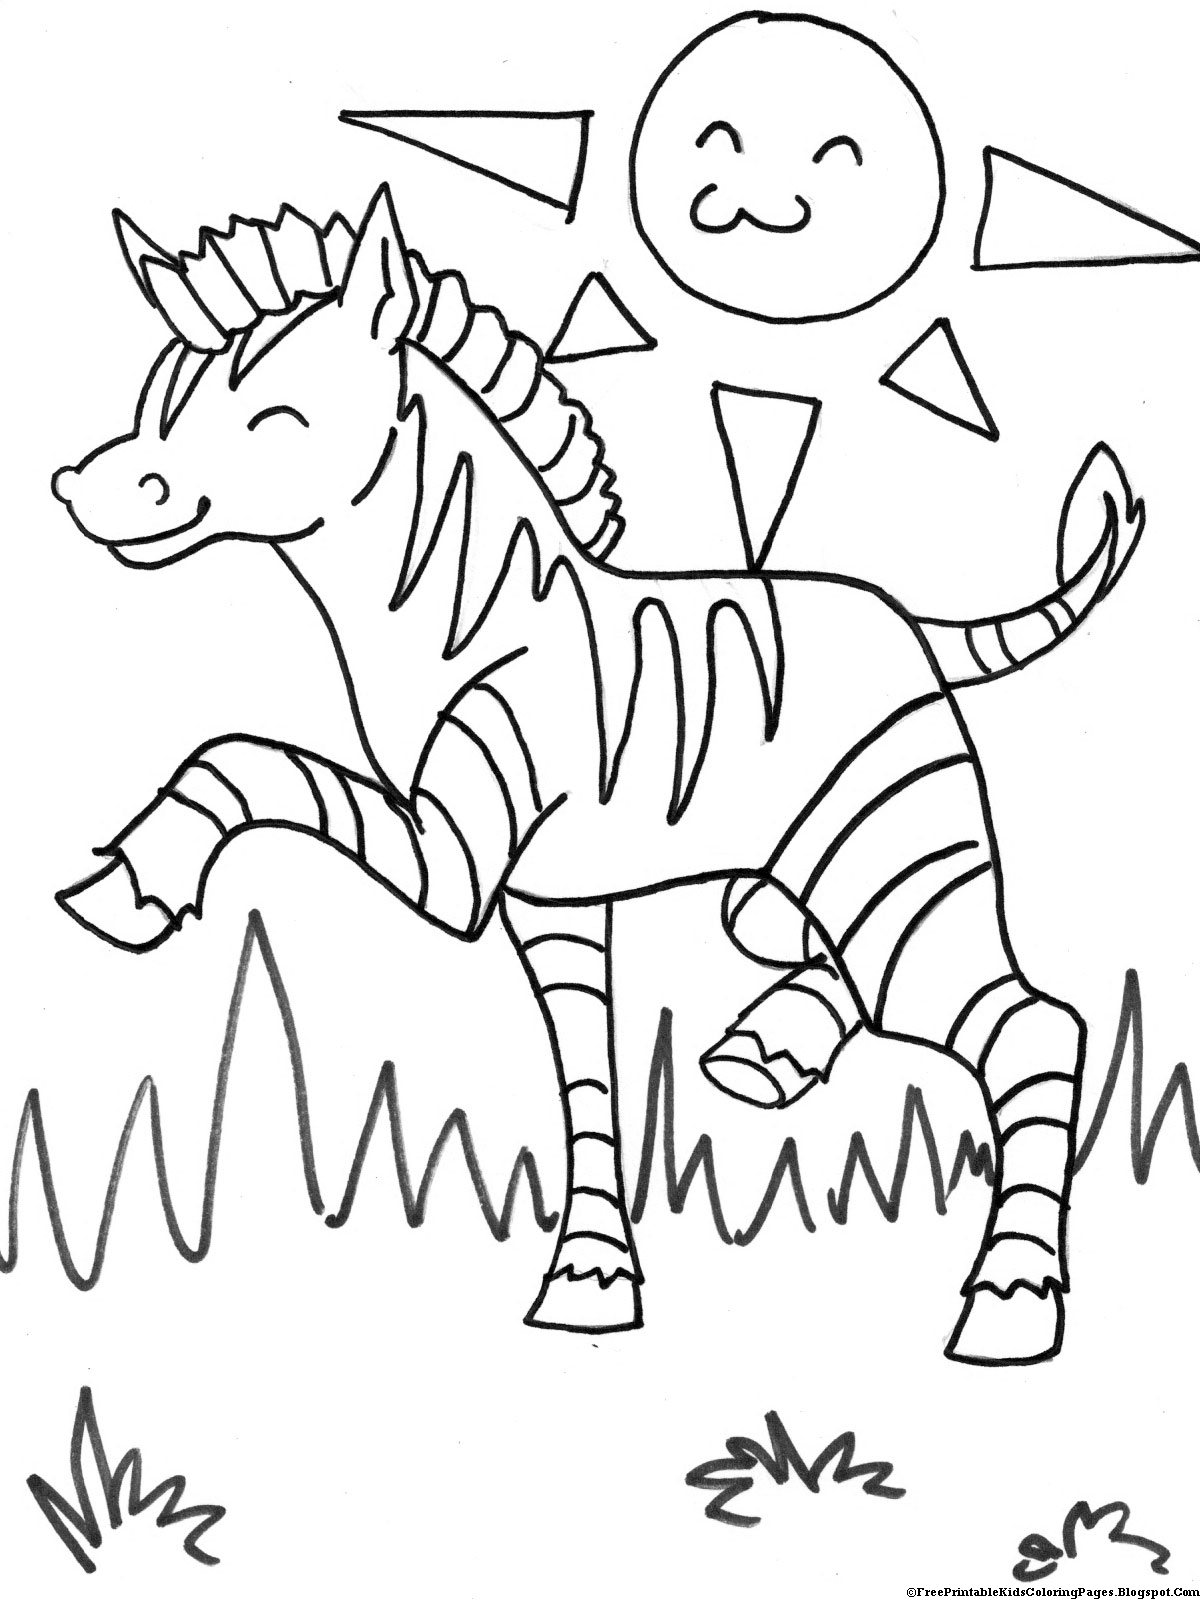 coloring kids pictures 40 exclusive kids coloring pages ideas we need fun pictures coloring kids